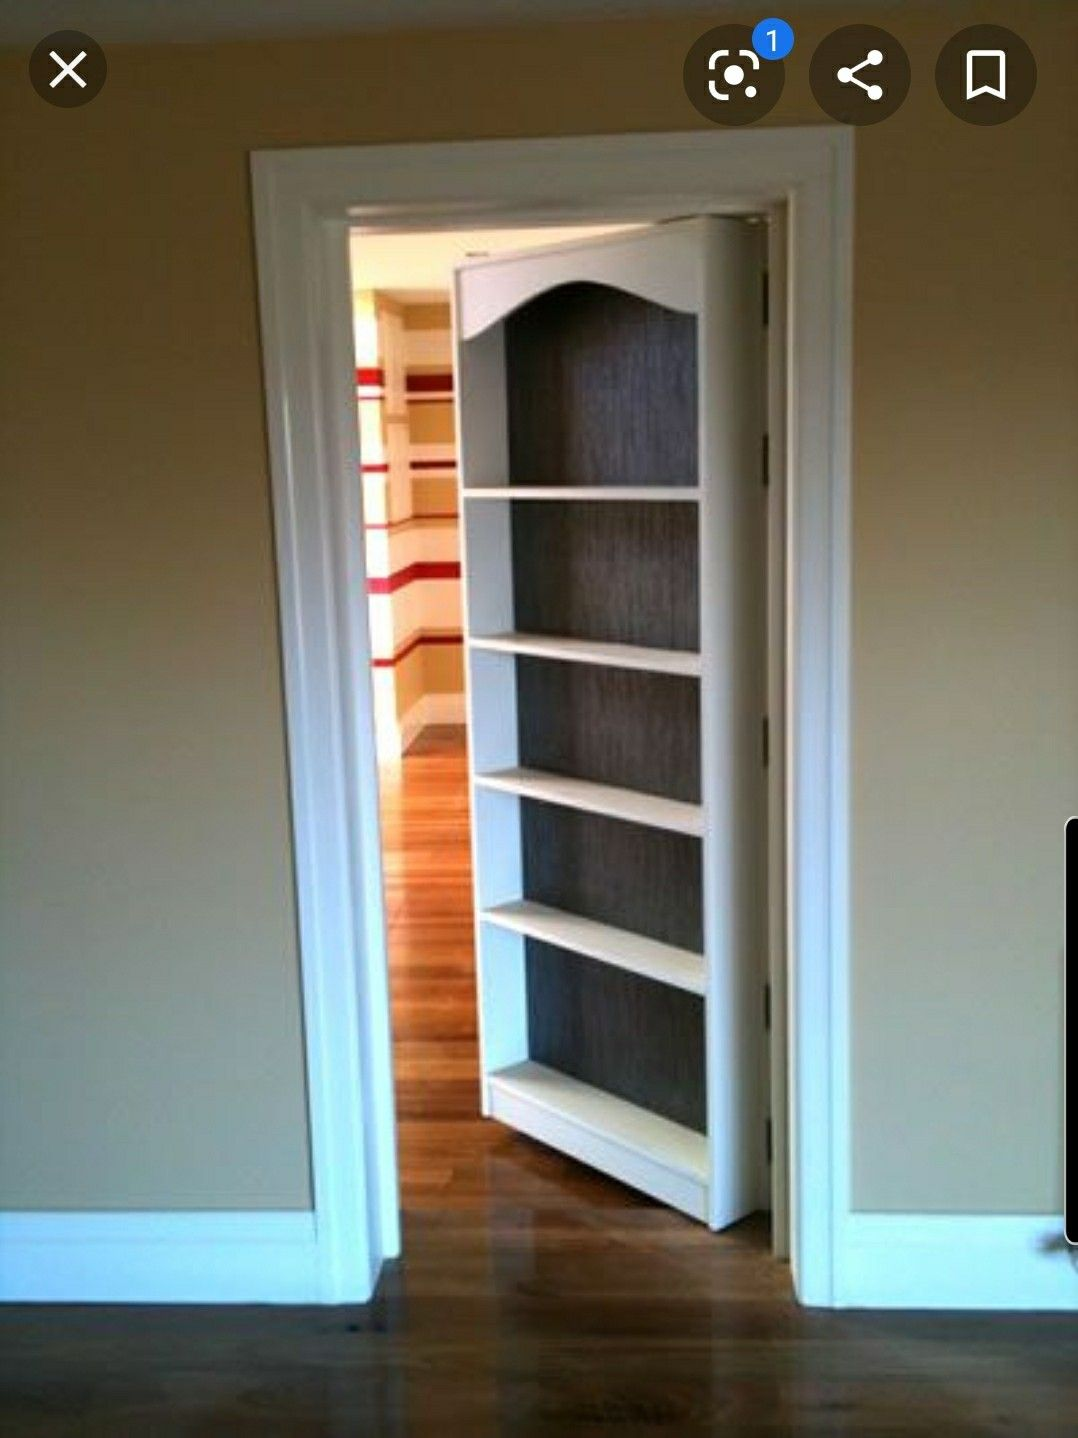 Pin by Jacqueline on home reno ideas in 2020 Bookshelves